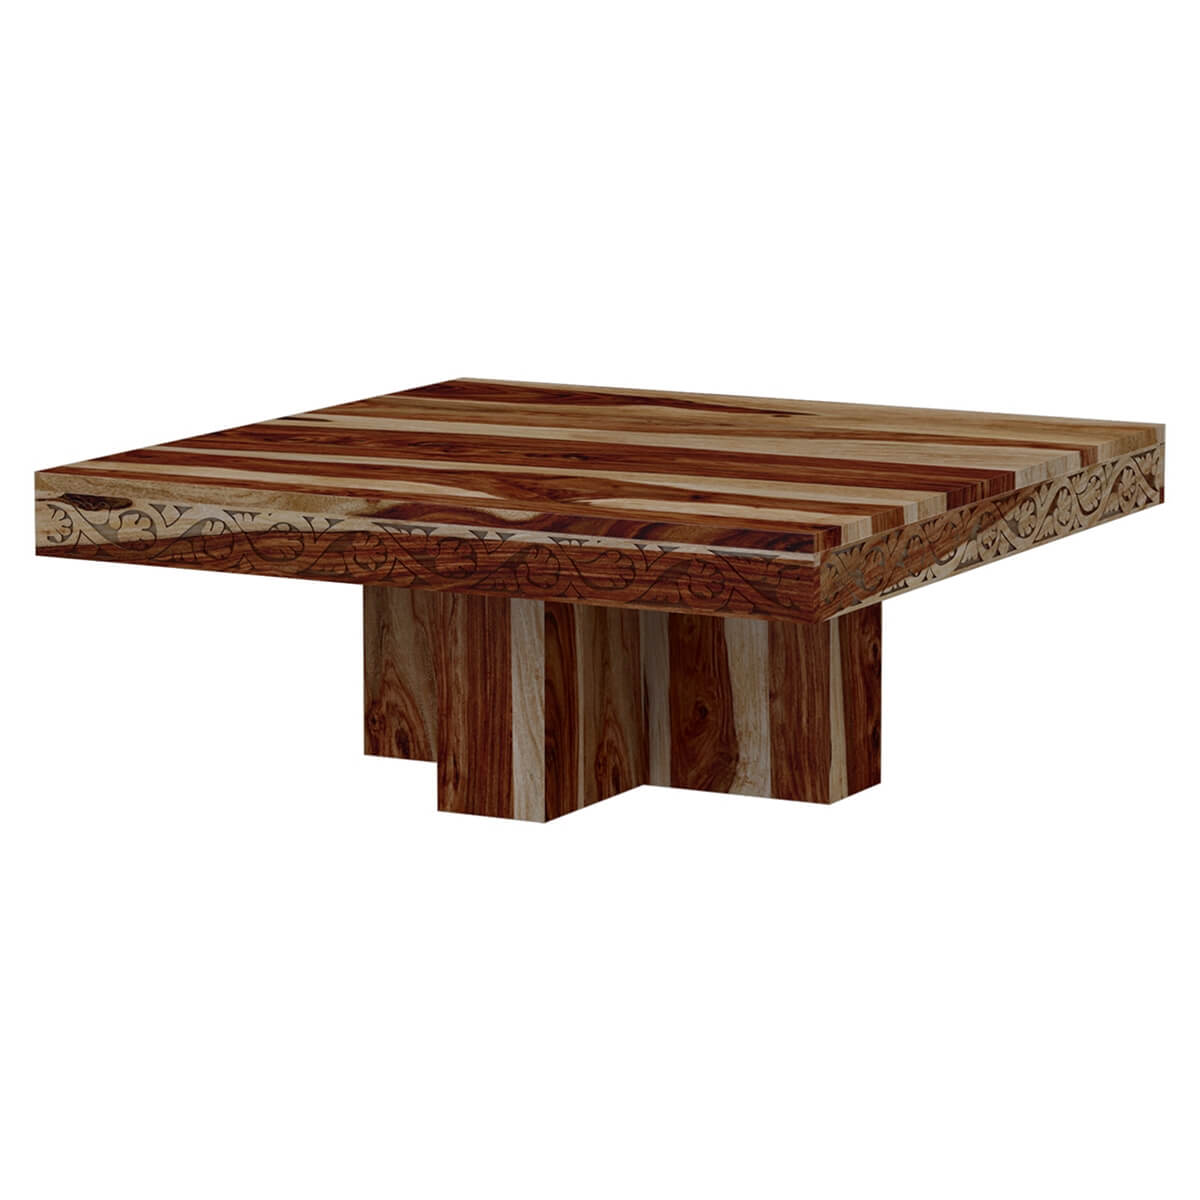 Dallas midnight 46quot solid wood square pedestal rustic for 46 inch square coffee table